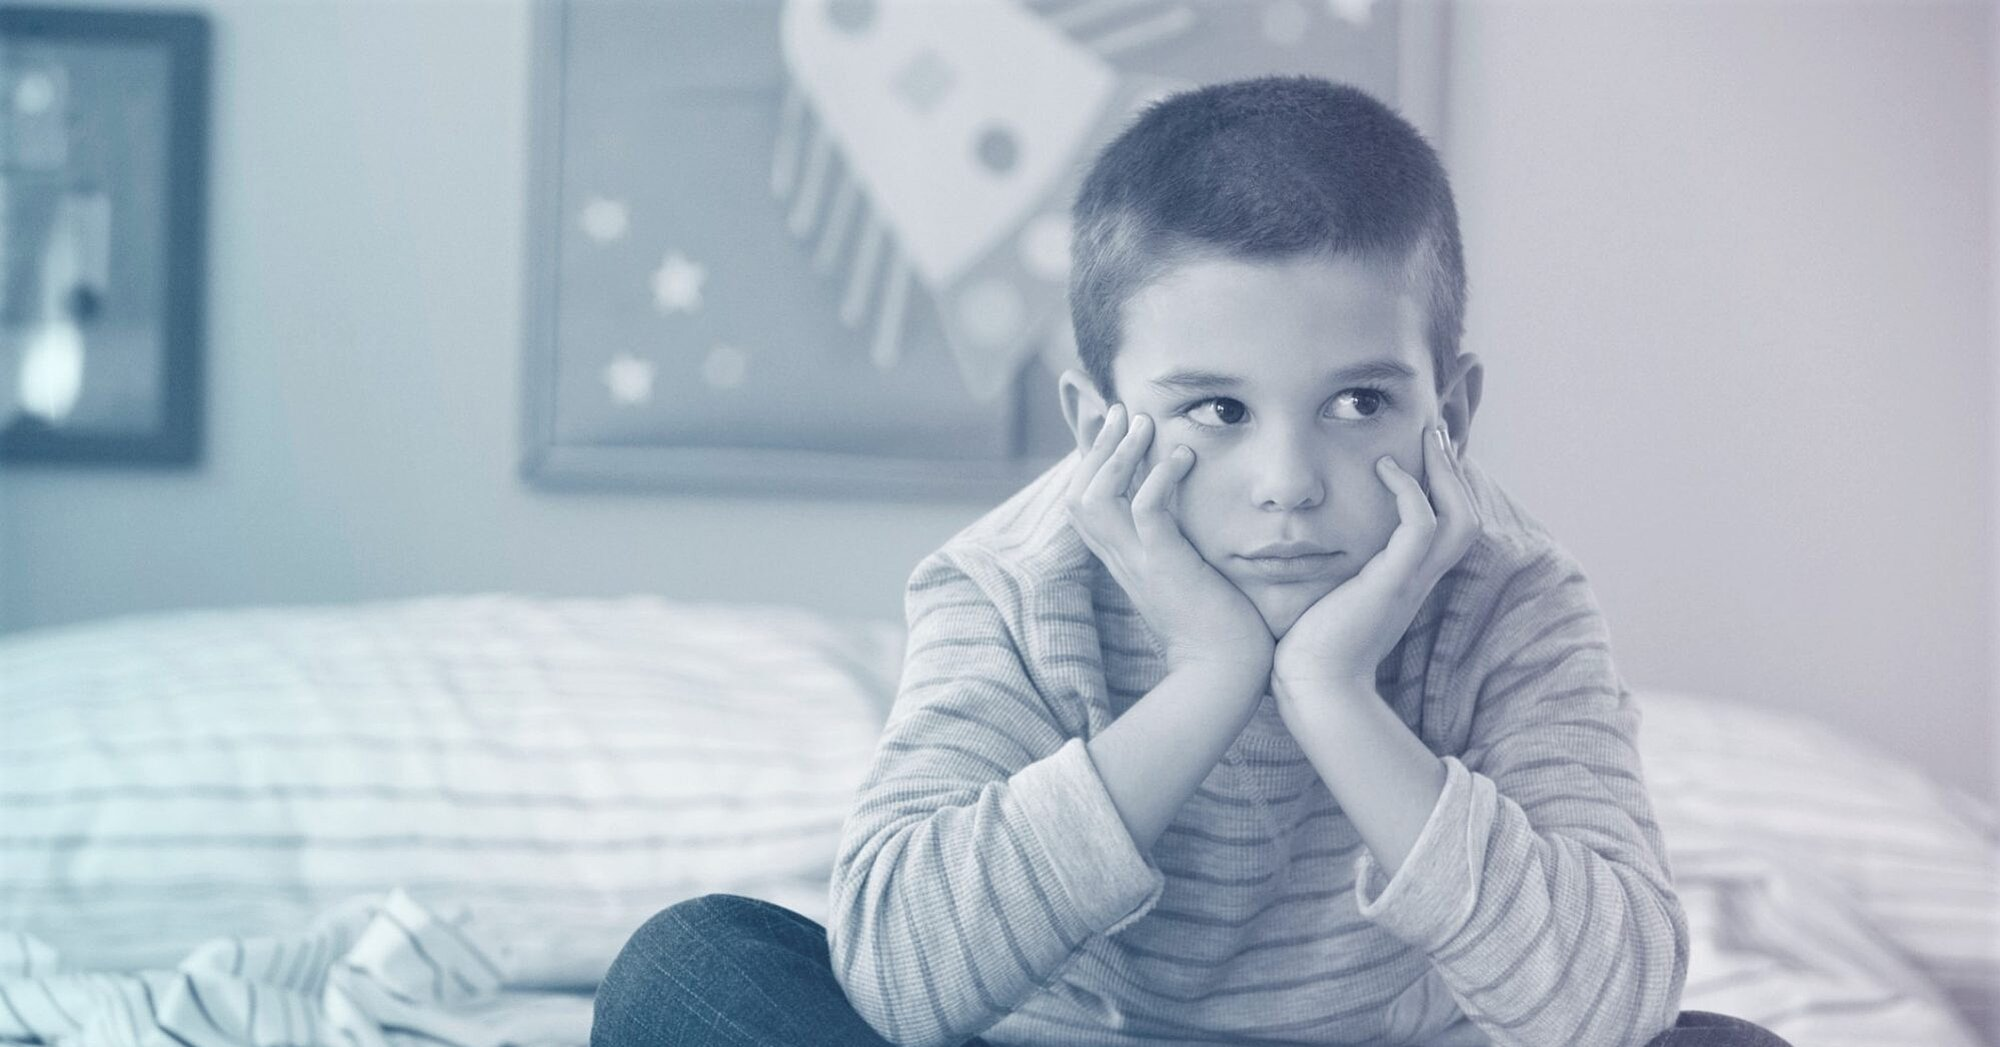 How to Help Children Cope with the Death of a Loved One During the Pandemic